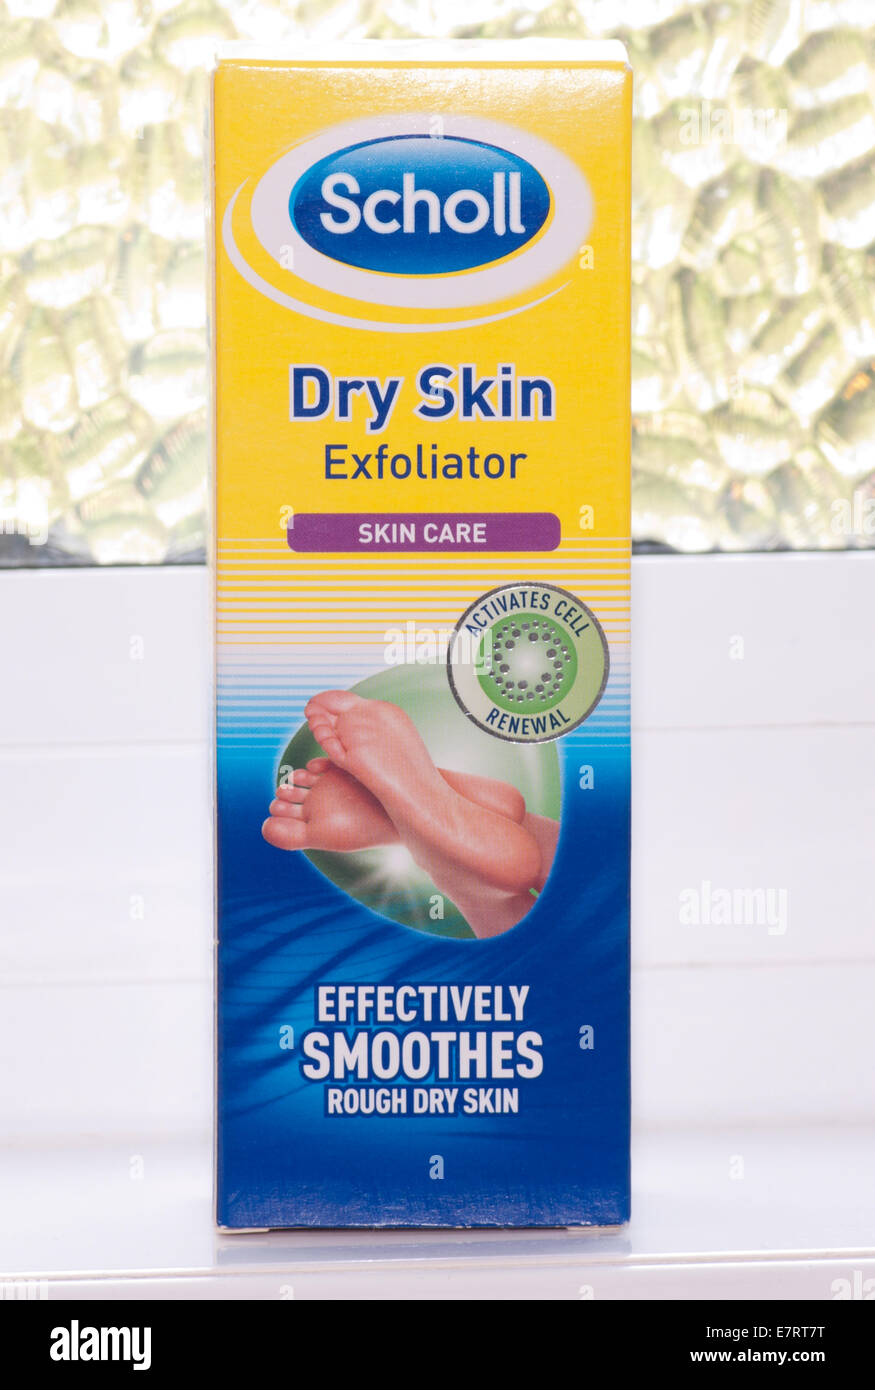 Scholl Dry Skin Exfoliator Skin care Products Stock Photo